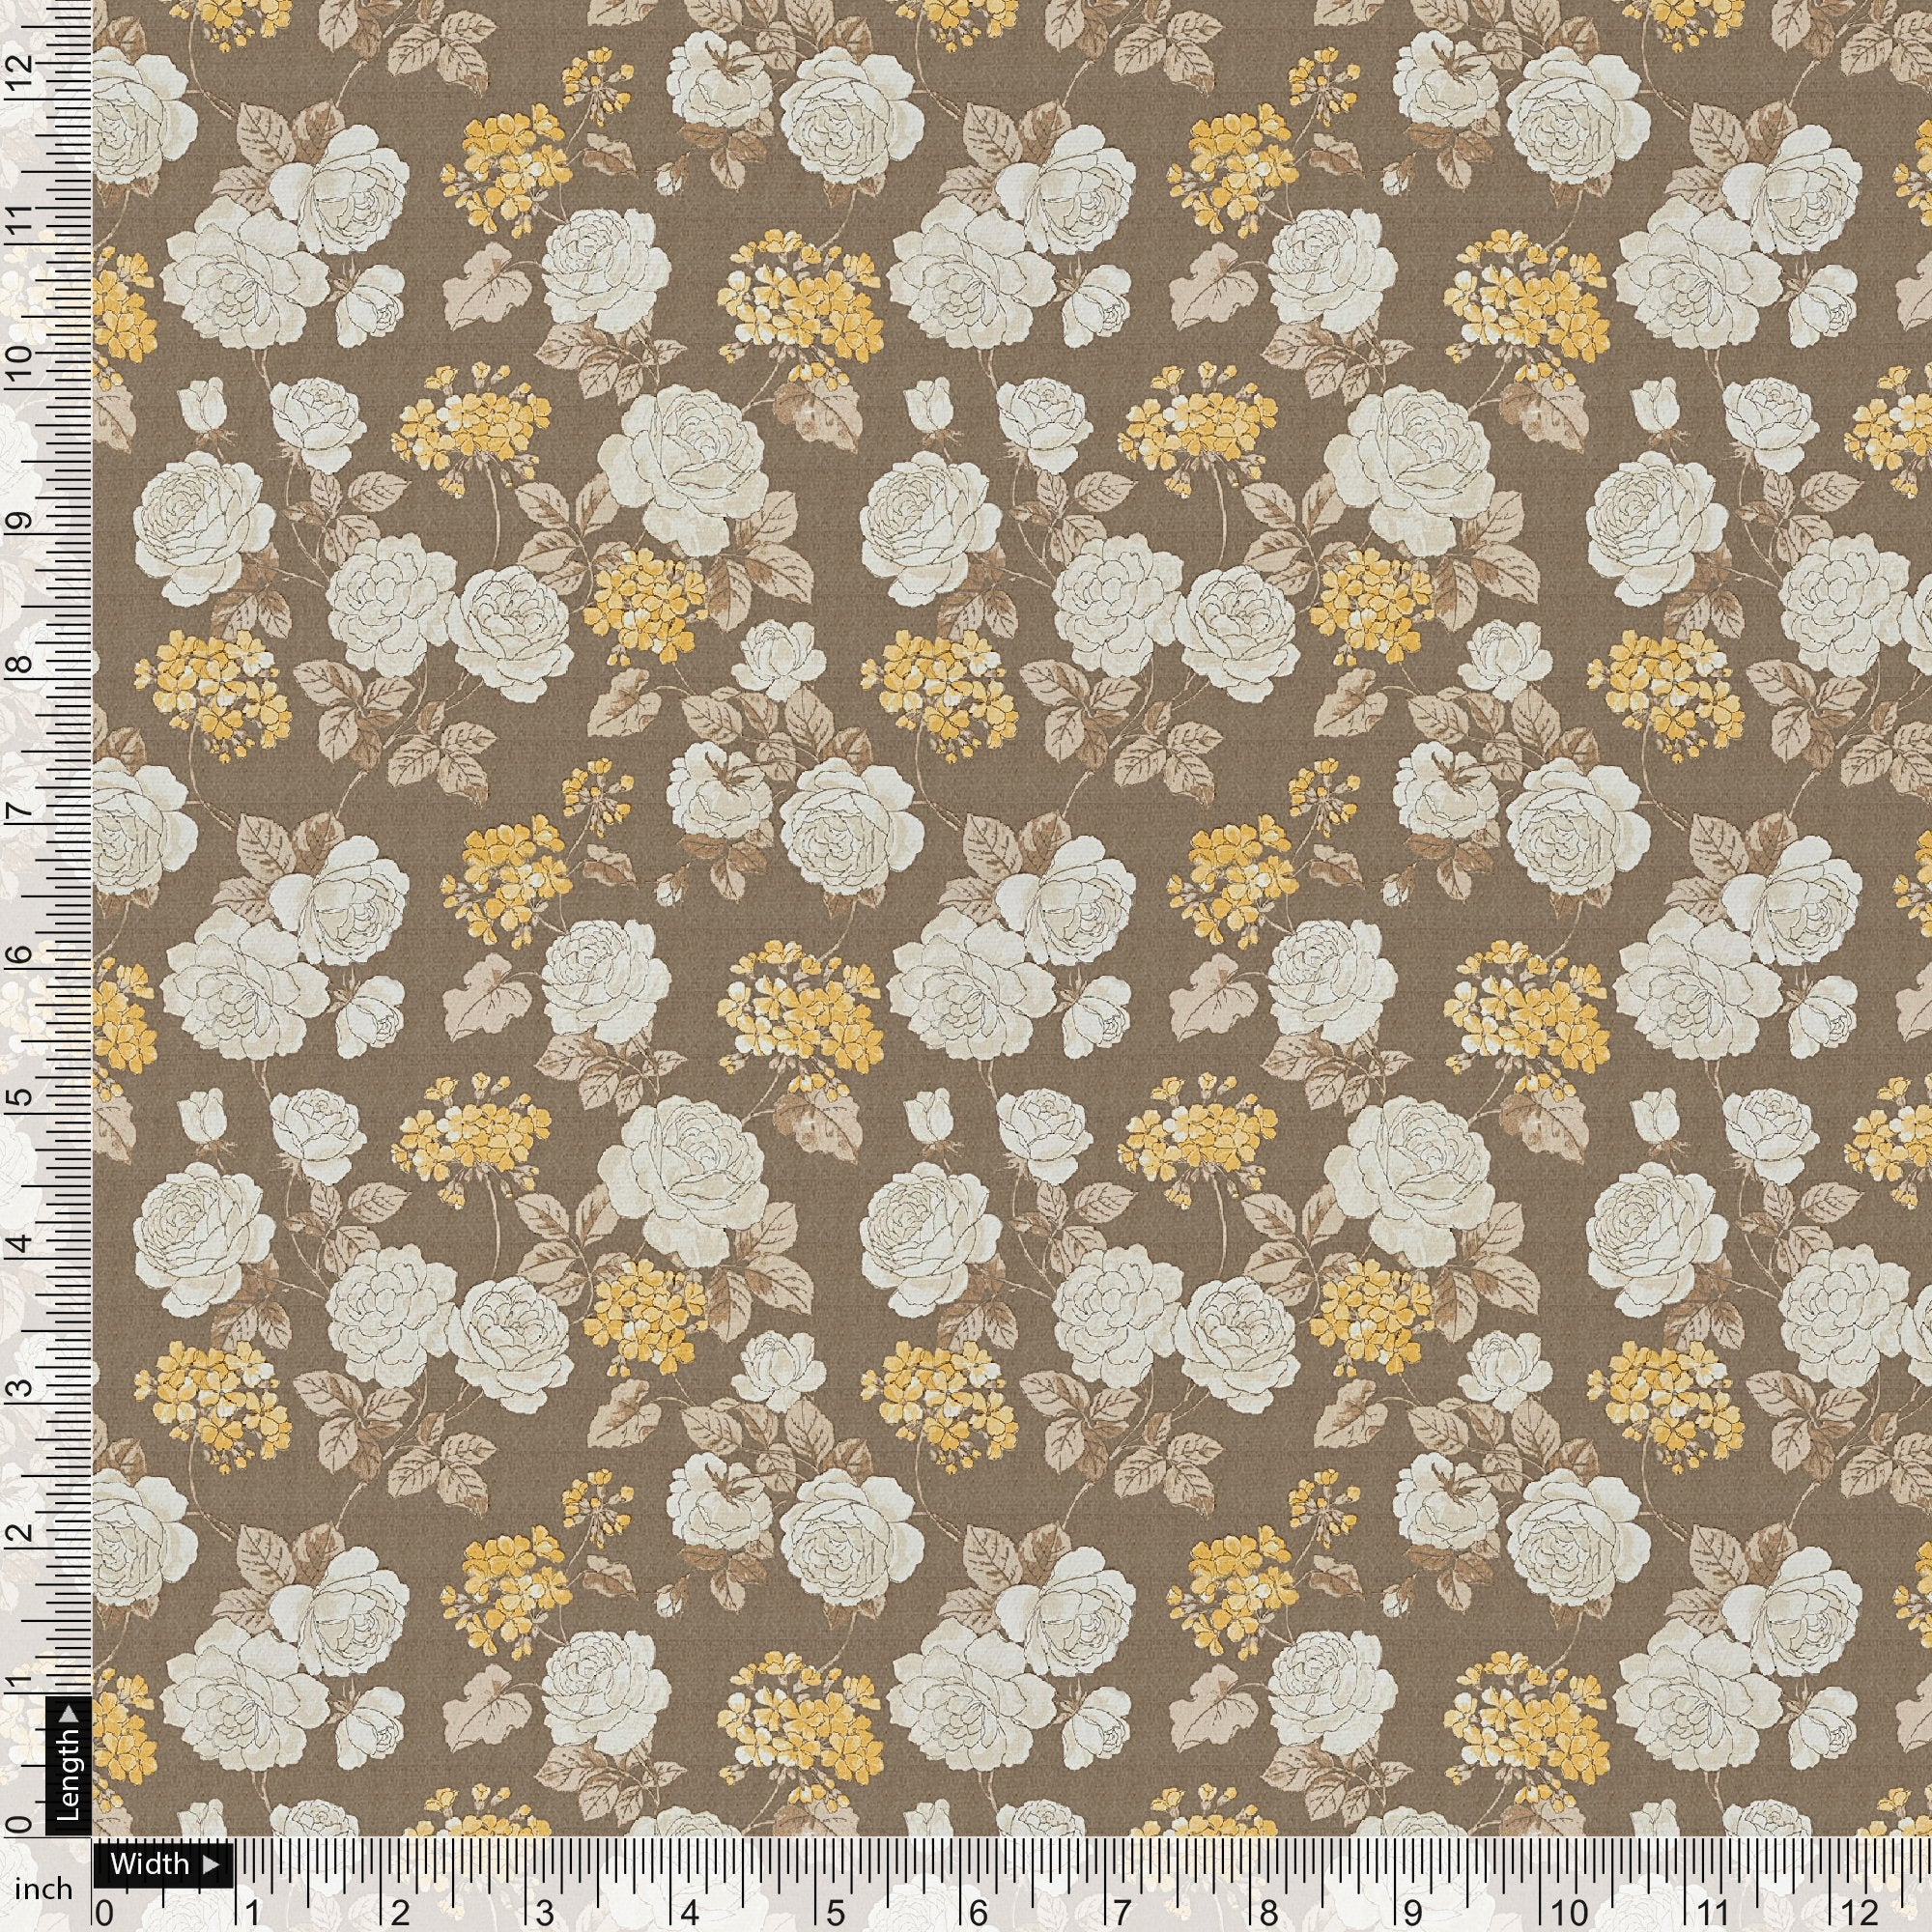 Beautiful Floral Vine Over Brown Base Digital Printed Fabric - FAB VOGUE Studio. Shop Fabric @ www.fabvoguestudio.com